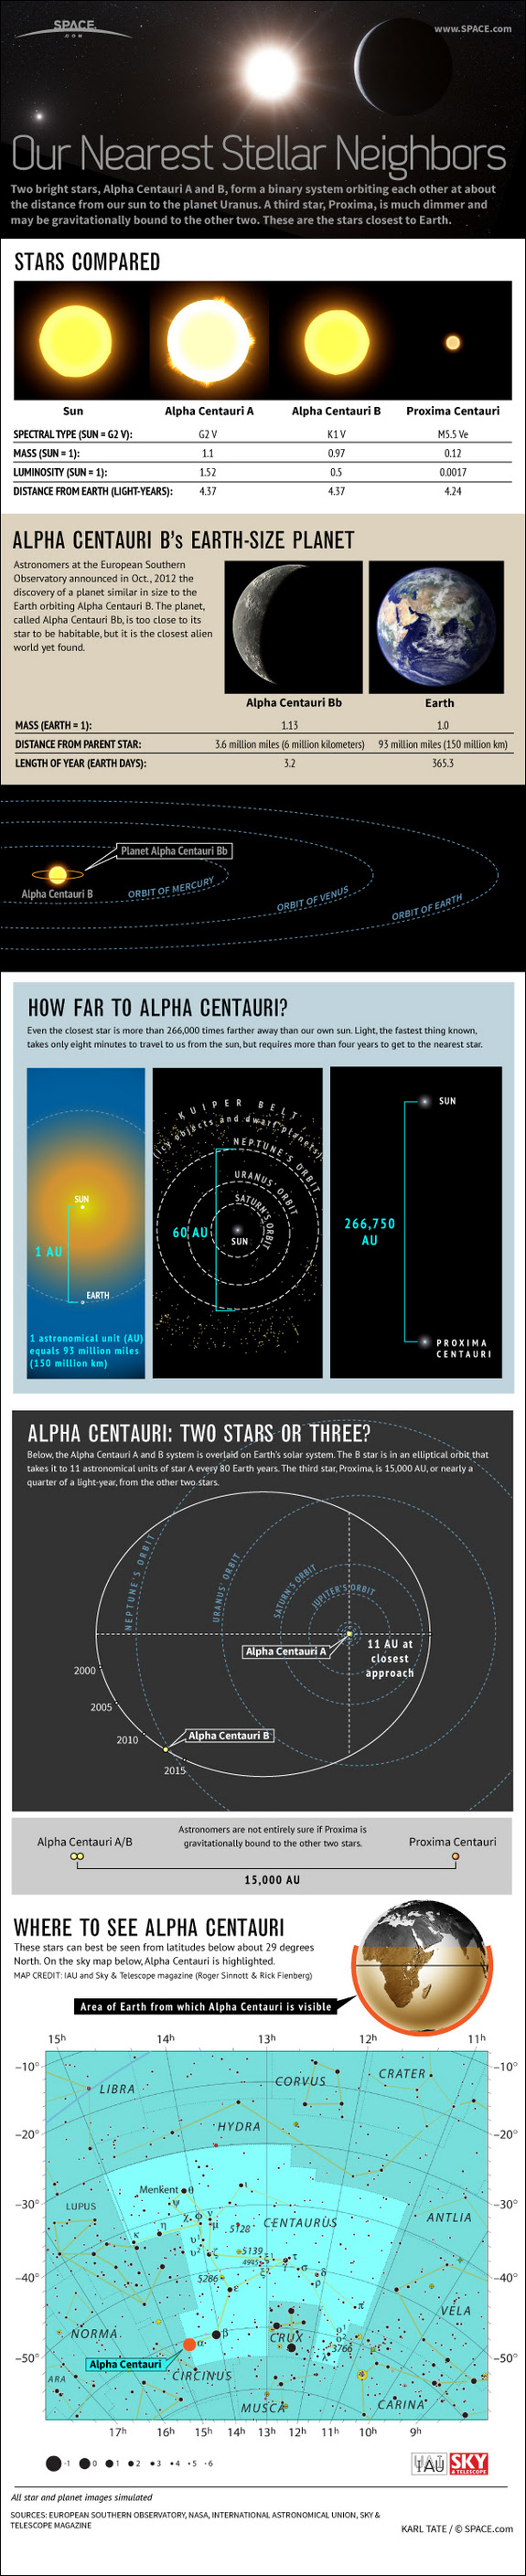 Find out about the nearby Alpha Centauri star system and its newly-discovered Earth-size planet, in this SPACE.com infographic.